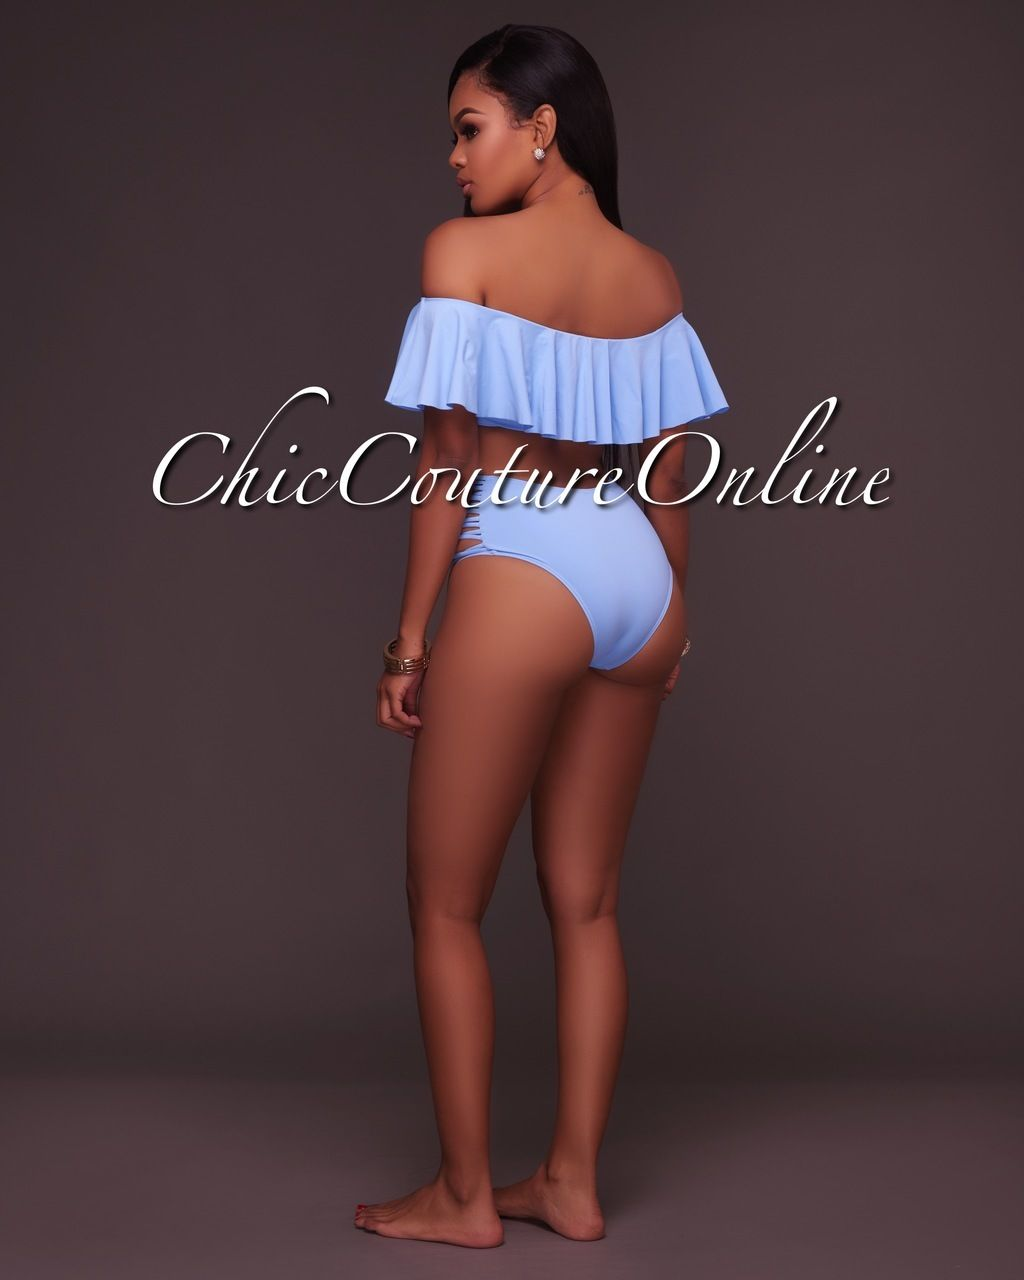 e34c440609a75 Chic Couture Online - Ohara Blue Ruffle Top and Strappy High Waist Bottom  Two Piece Swimsuit